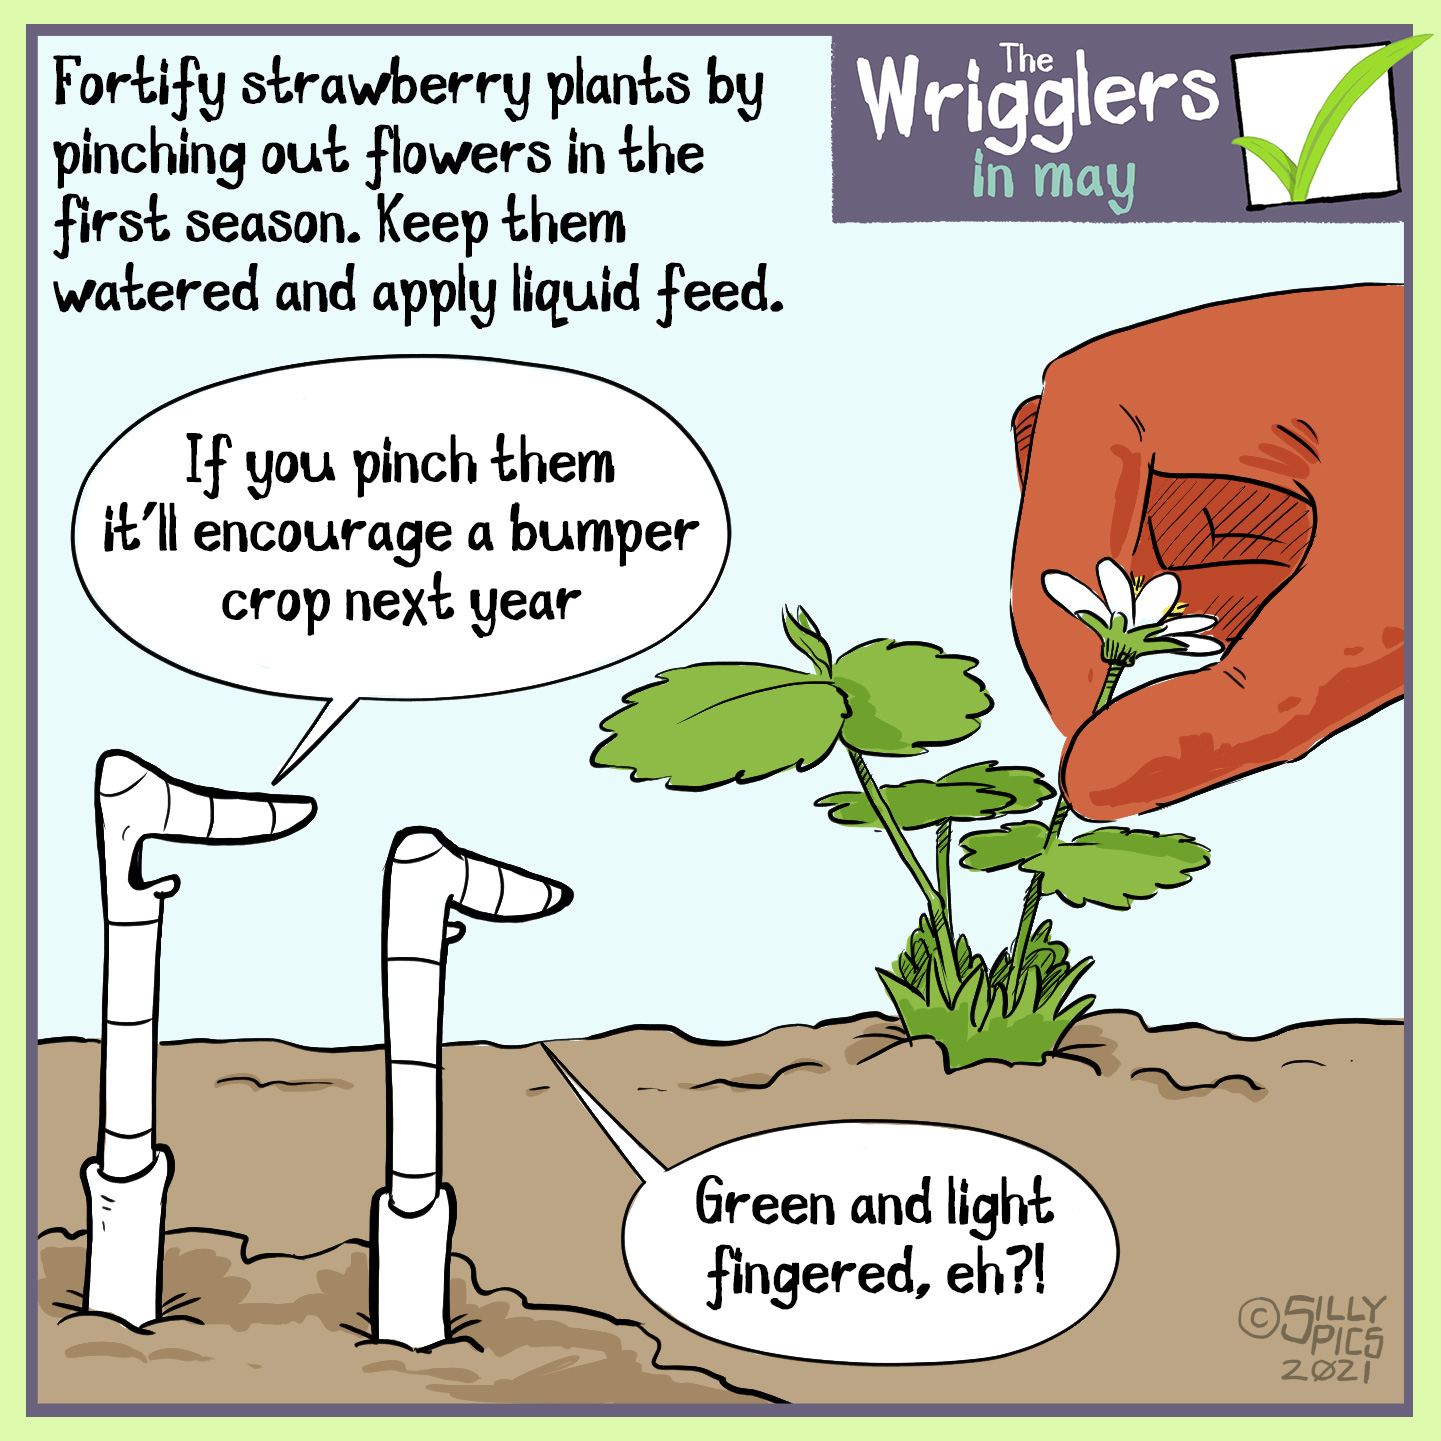 """Fortify new strawberry plants by pinching out the flowers in their first season. Keep them well watered and apply liquid feed. The cartoon is of two worms watching a gloved hand pinch out a strawberry flower head. One worm says, """" If you pinch them it'll encourage a bumper crop next year."""" The other worm replies,""""Green and light fingered, eh?!"""""""